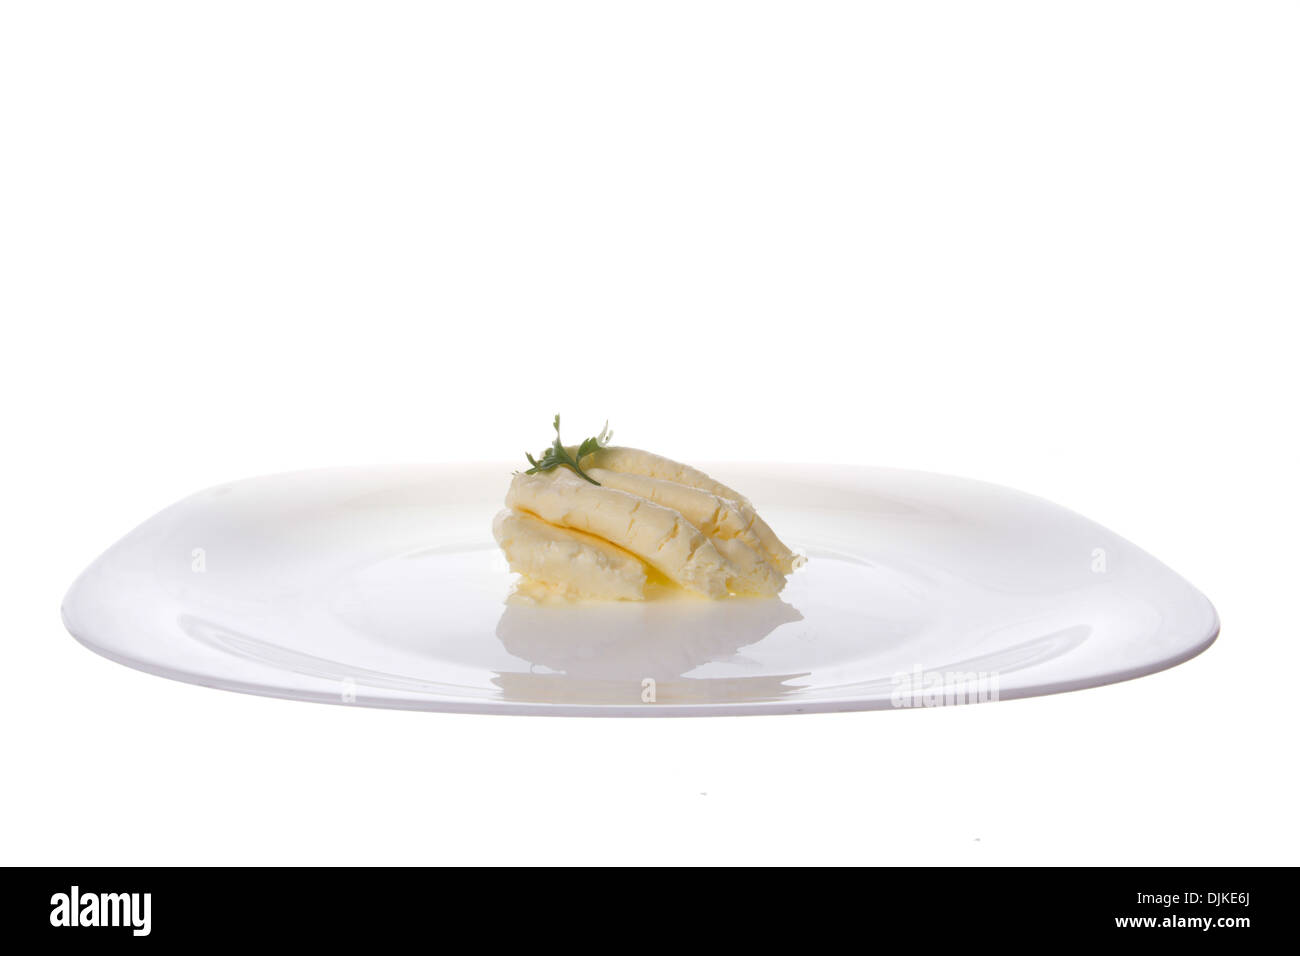 healthy cream cheese on the plate with parsley on top of it - Stock Image